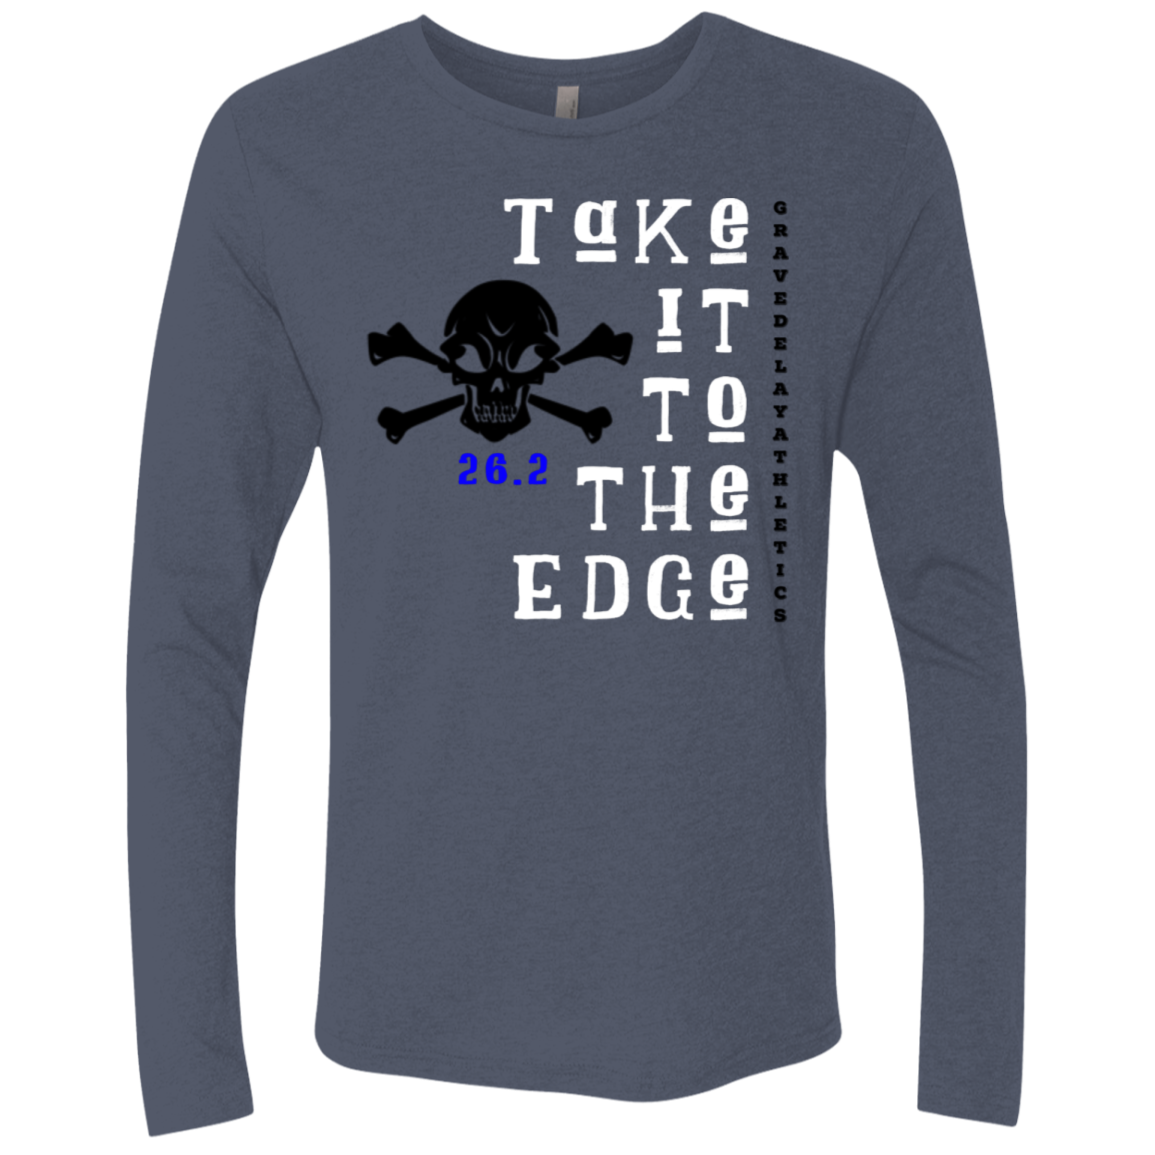 Take it to the Edge, 26.2 - Men's Triblend LS Crew